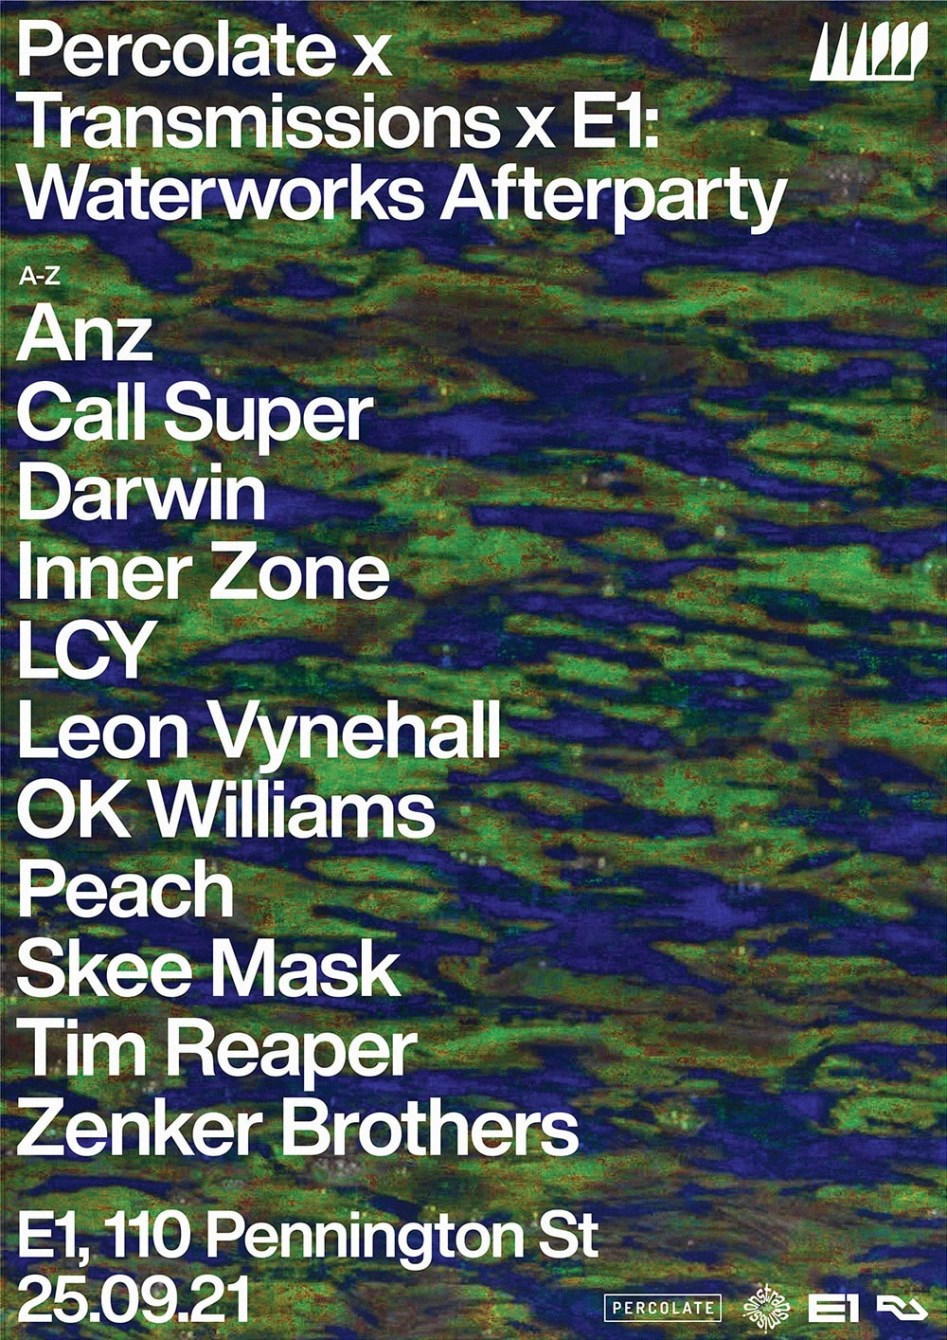 Percolate x Transmissions x E1: Official Waterworks Afterparty - Flyer front